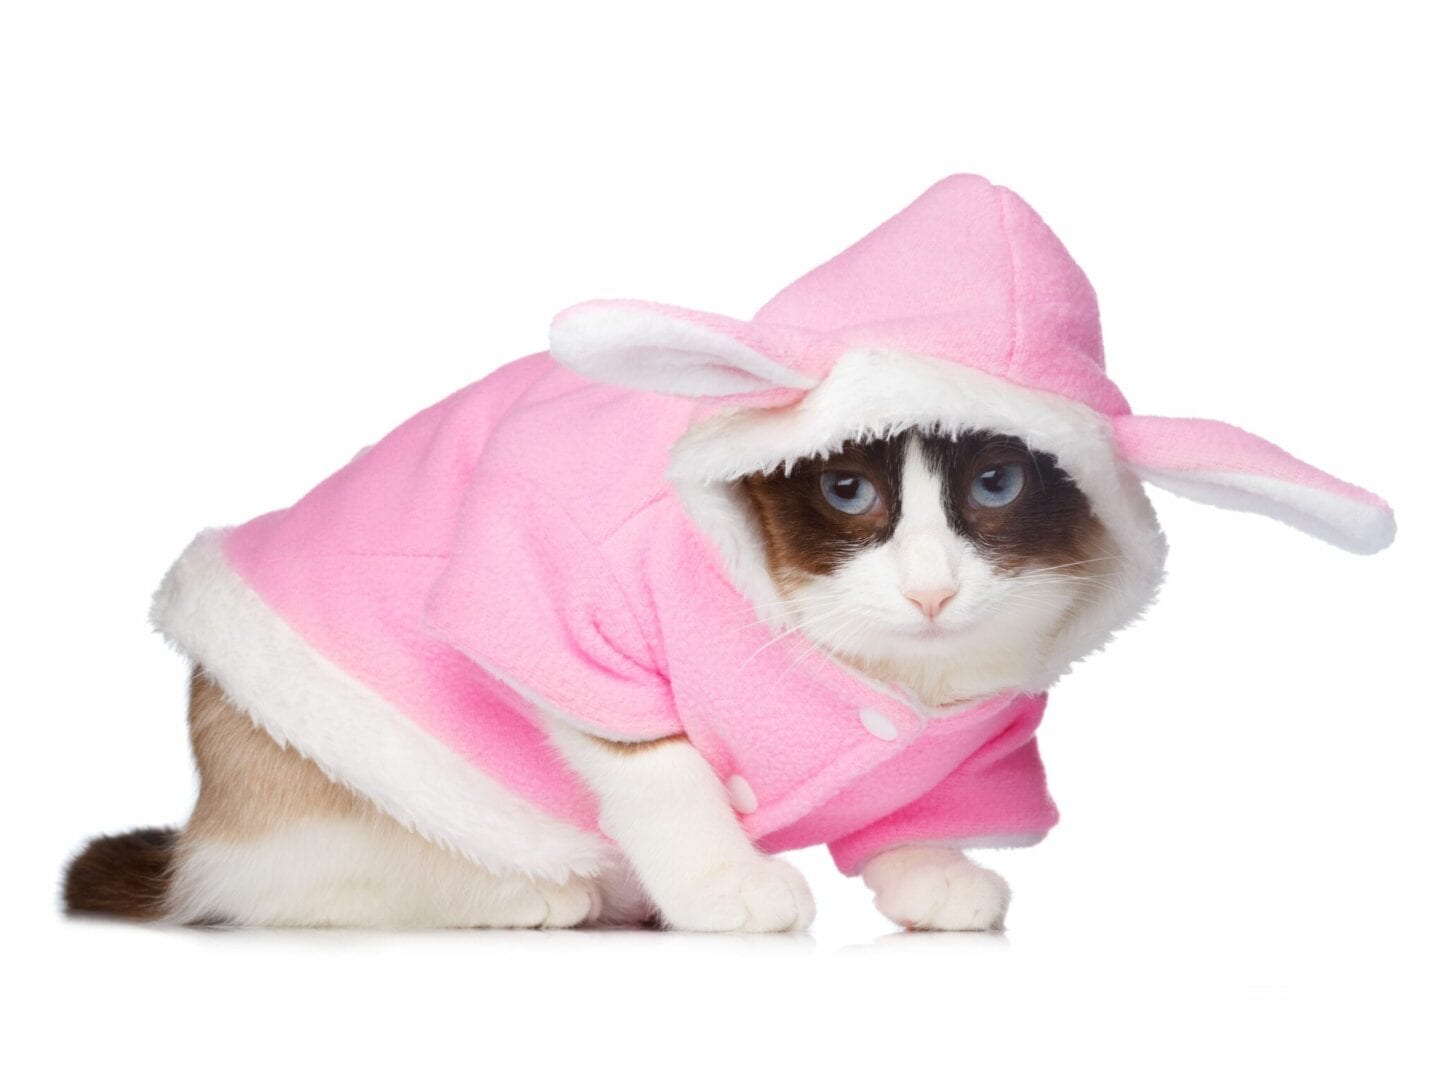 why do cats hate clothes?